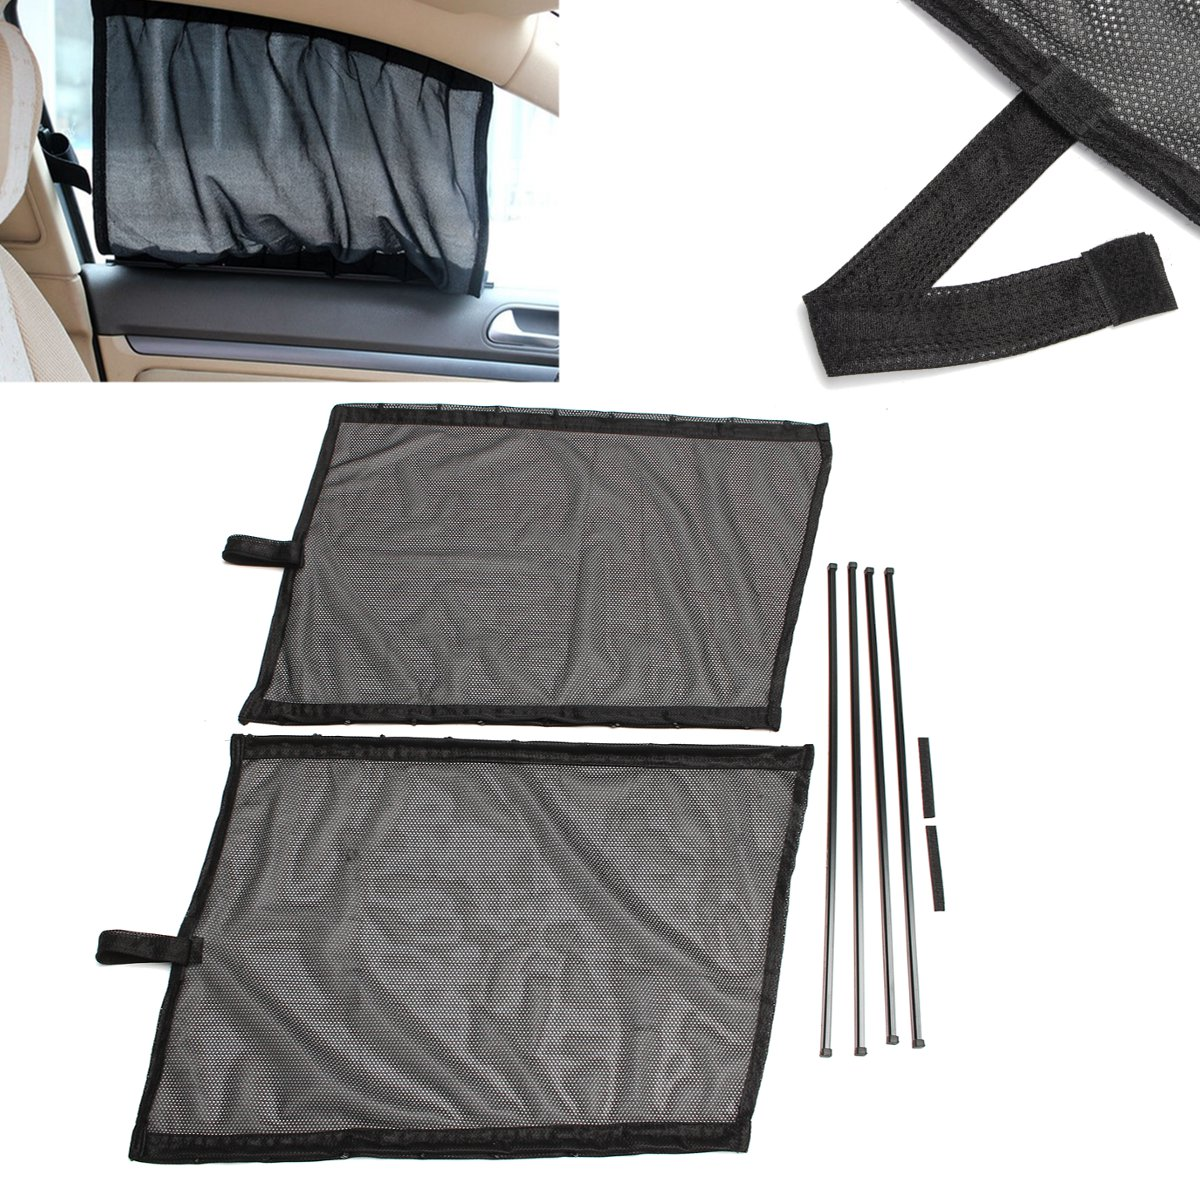 2Pcs Car Sunshade Curtain Uv Proof Side Window Black Mesh Gauze Guide Rail 545*370mm